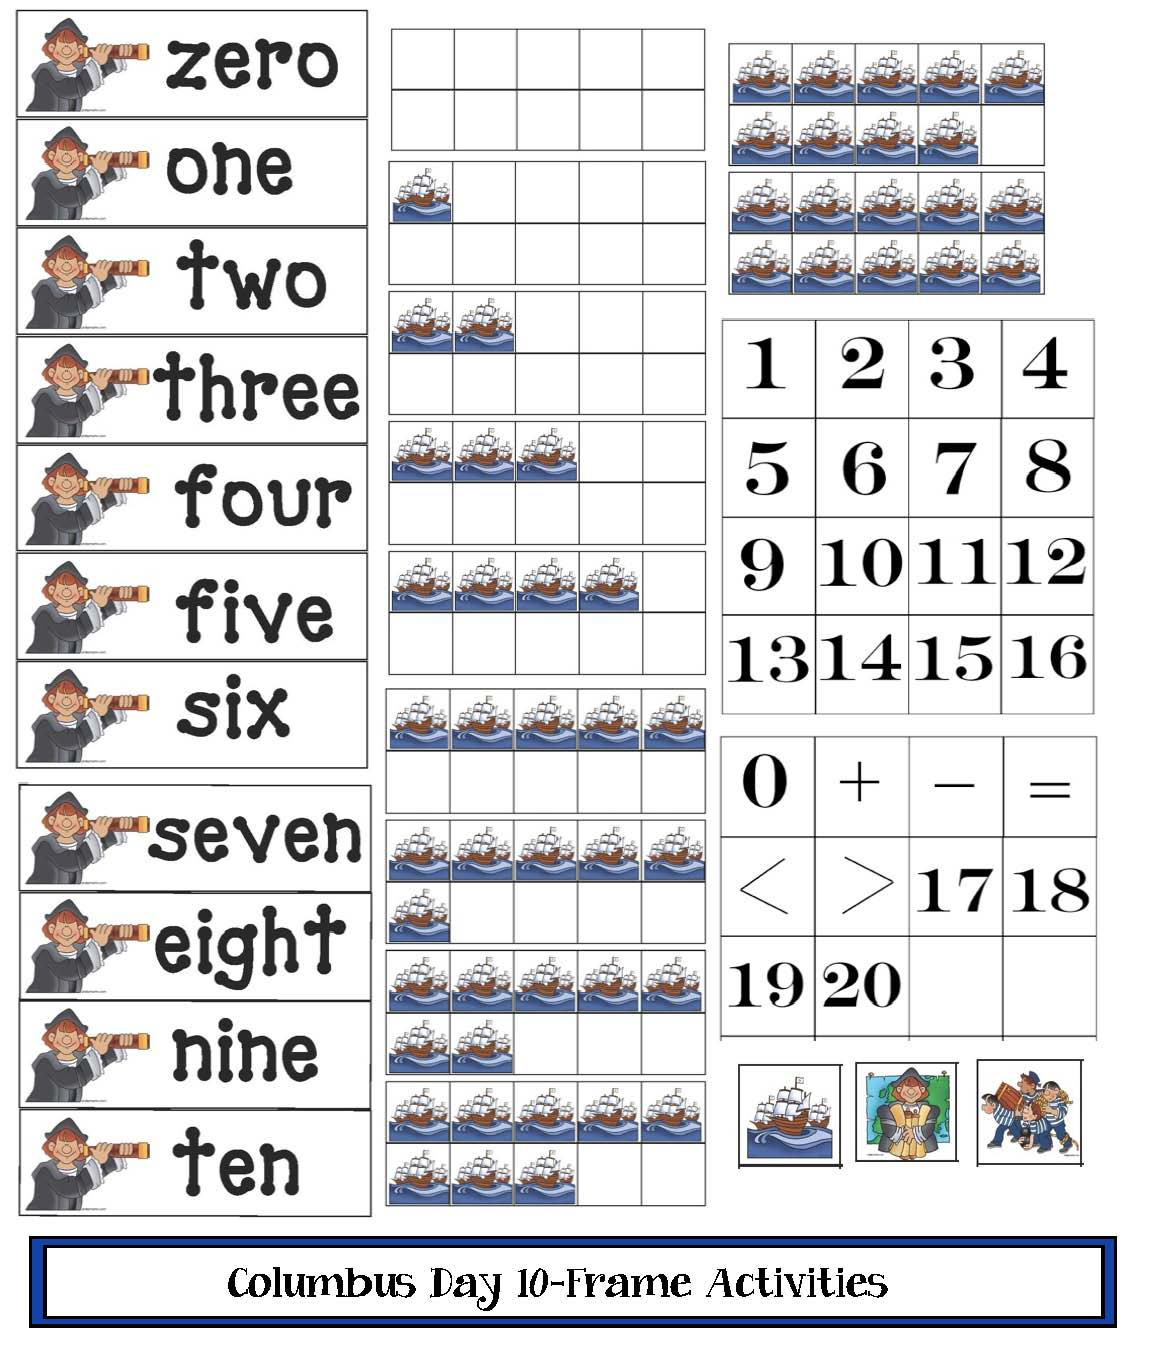 columbus day activities, columbus day centers, columbus day alphabet cards, columbus day games, 50+ columbus day activities, columbus day lessons, 10 frames, 10 frame activities, 10 frame templates, 10 frames for columbus day, 10 frame manipulatives, patterning activities, addition and subtraction for columbus day, patterning for columbus day, common core columbus,